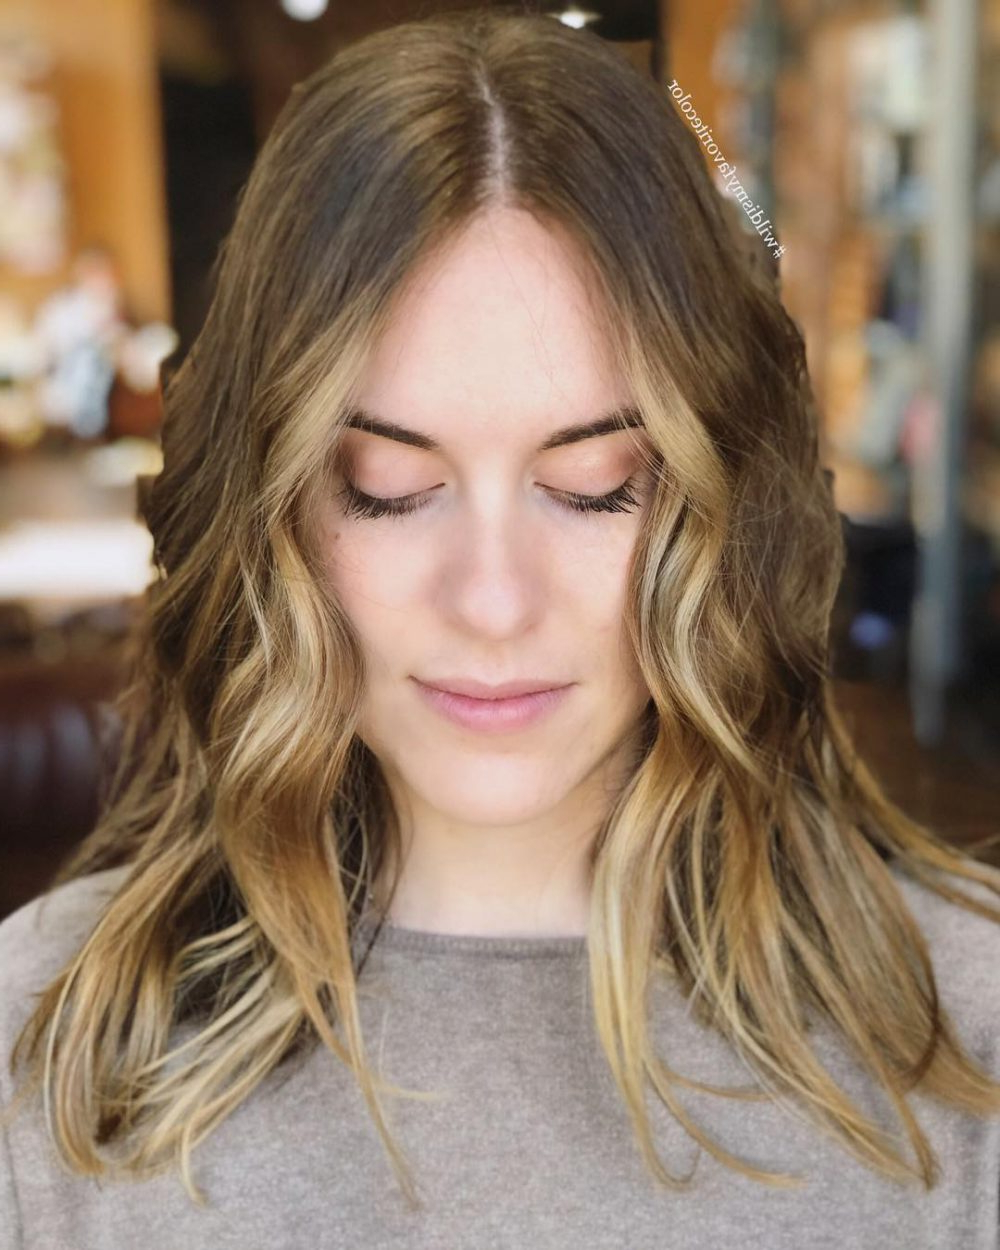 Most Recently Released Medium Haircuts For Big Face Regarding 17 Flattering Medium Hairstyles For Round Faces In (View 16 of 20)